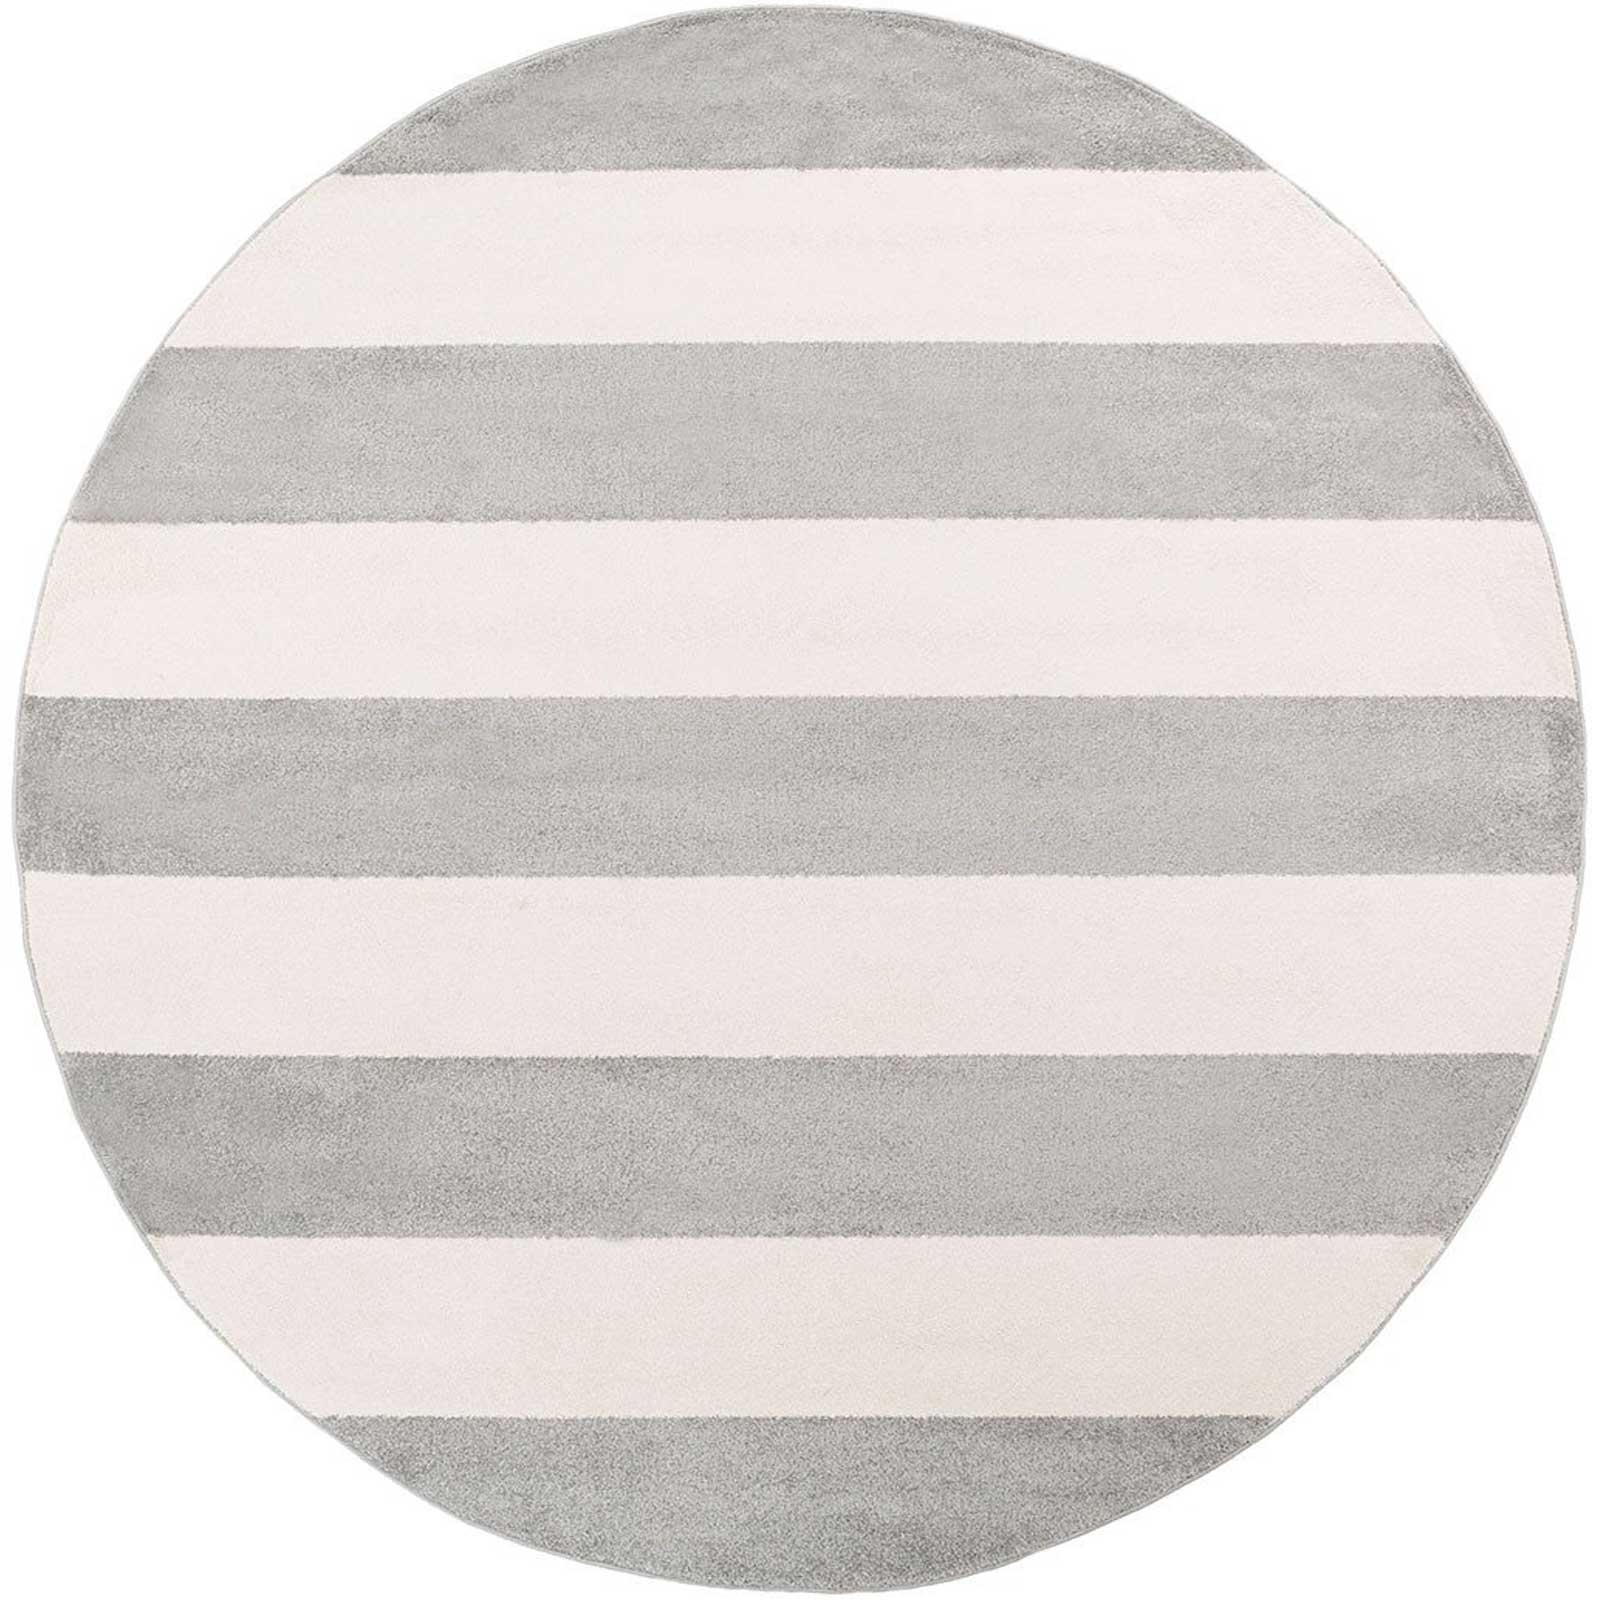 Horizon Striped Gray/Ivory Round Rug